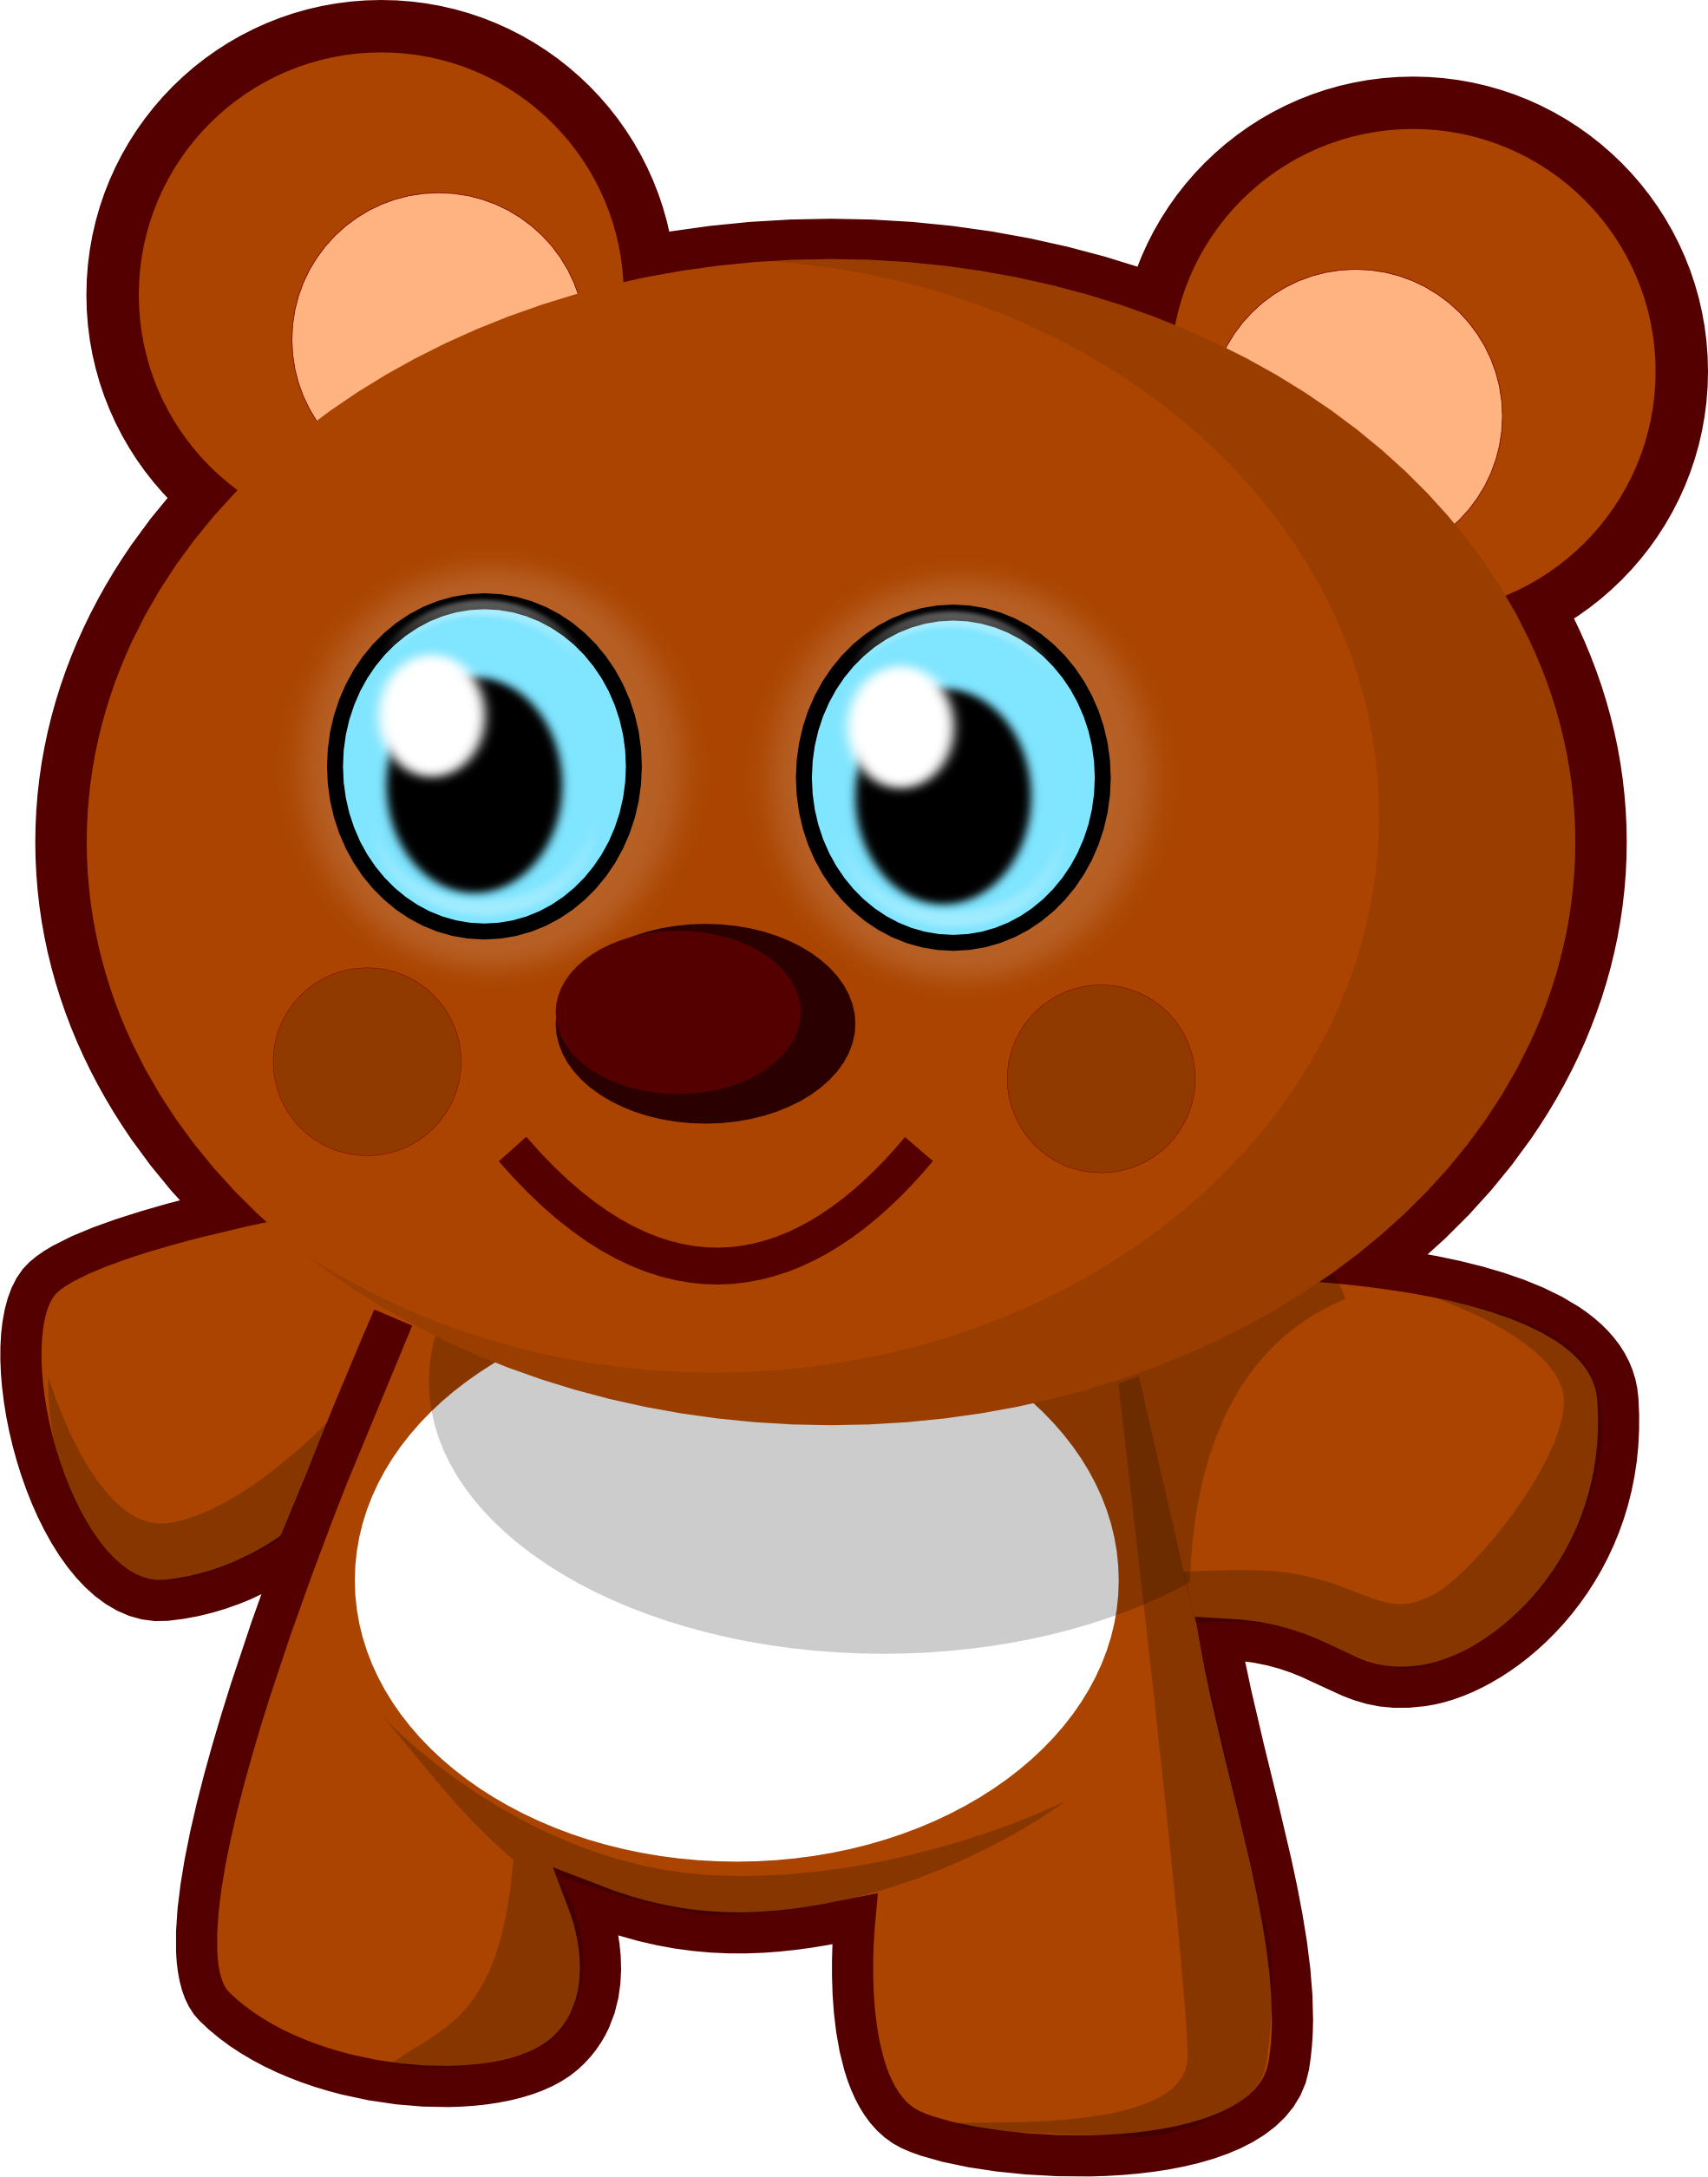 jpg freeuse library Stuffed animal clipart. Free clip art vector